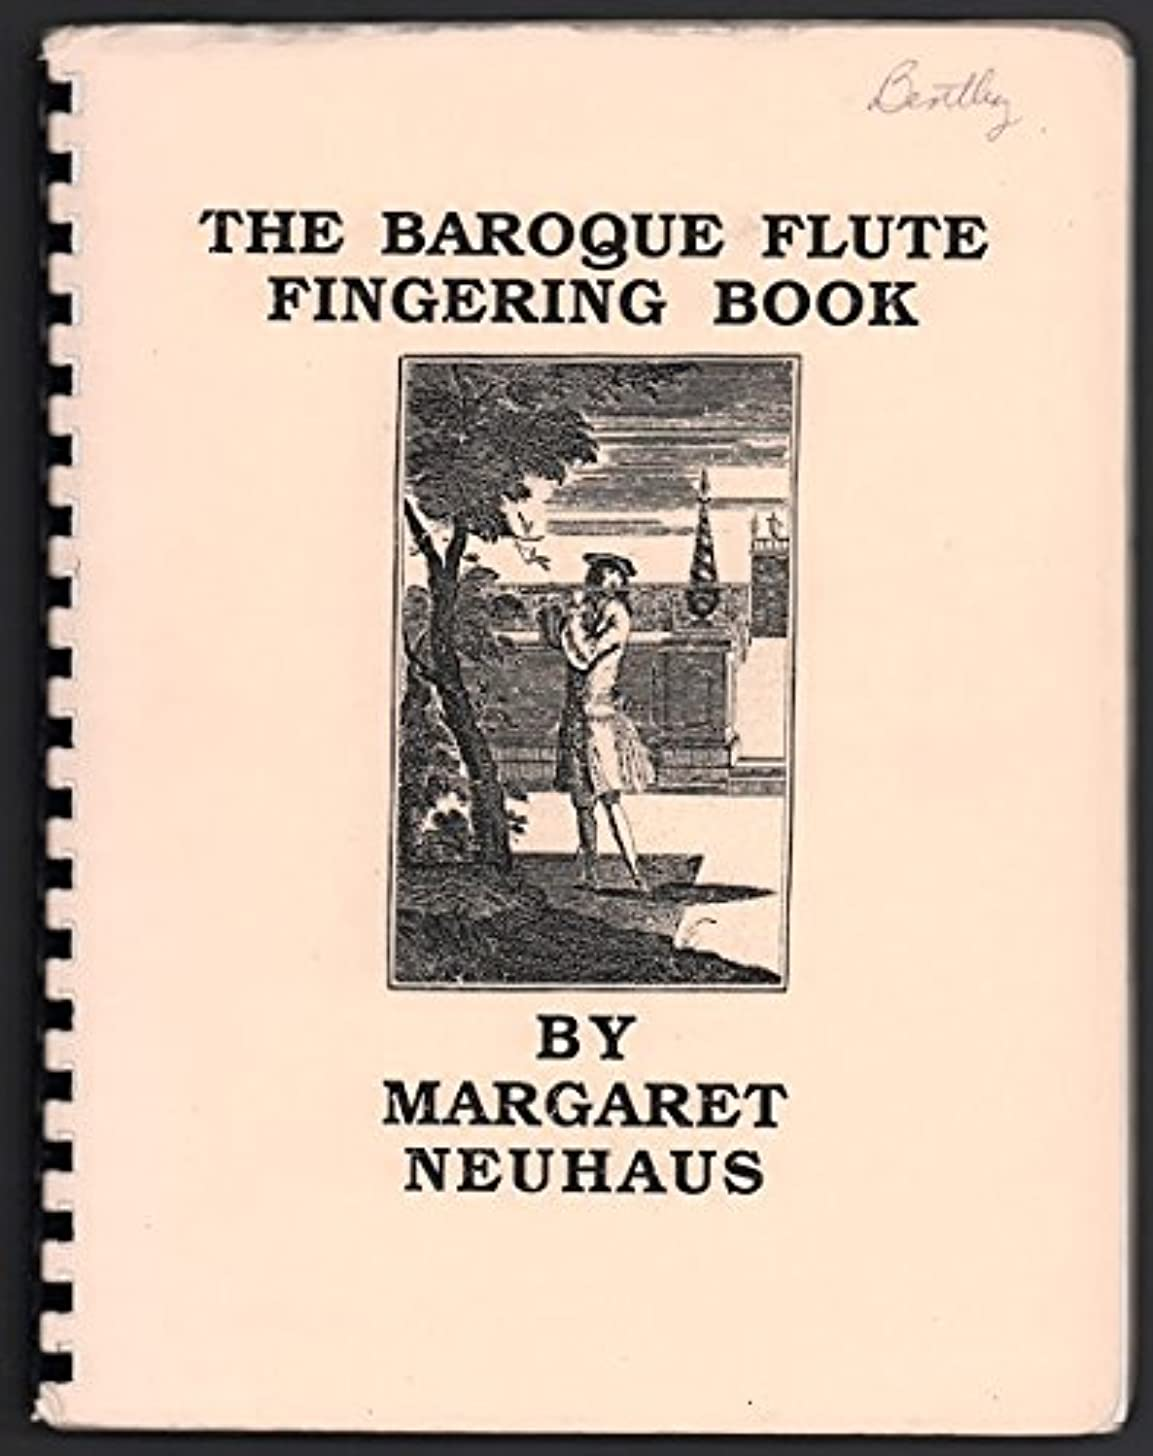 The baroque flute fingering book: A comprehensive guide to fingerings for the one-keyed flute, including trills, flattements, and battements, based on ... from the eighteenth and nineteenth centuries